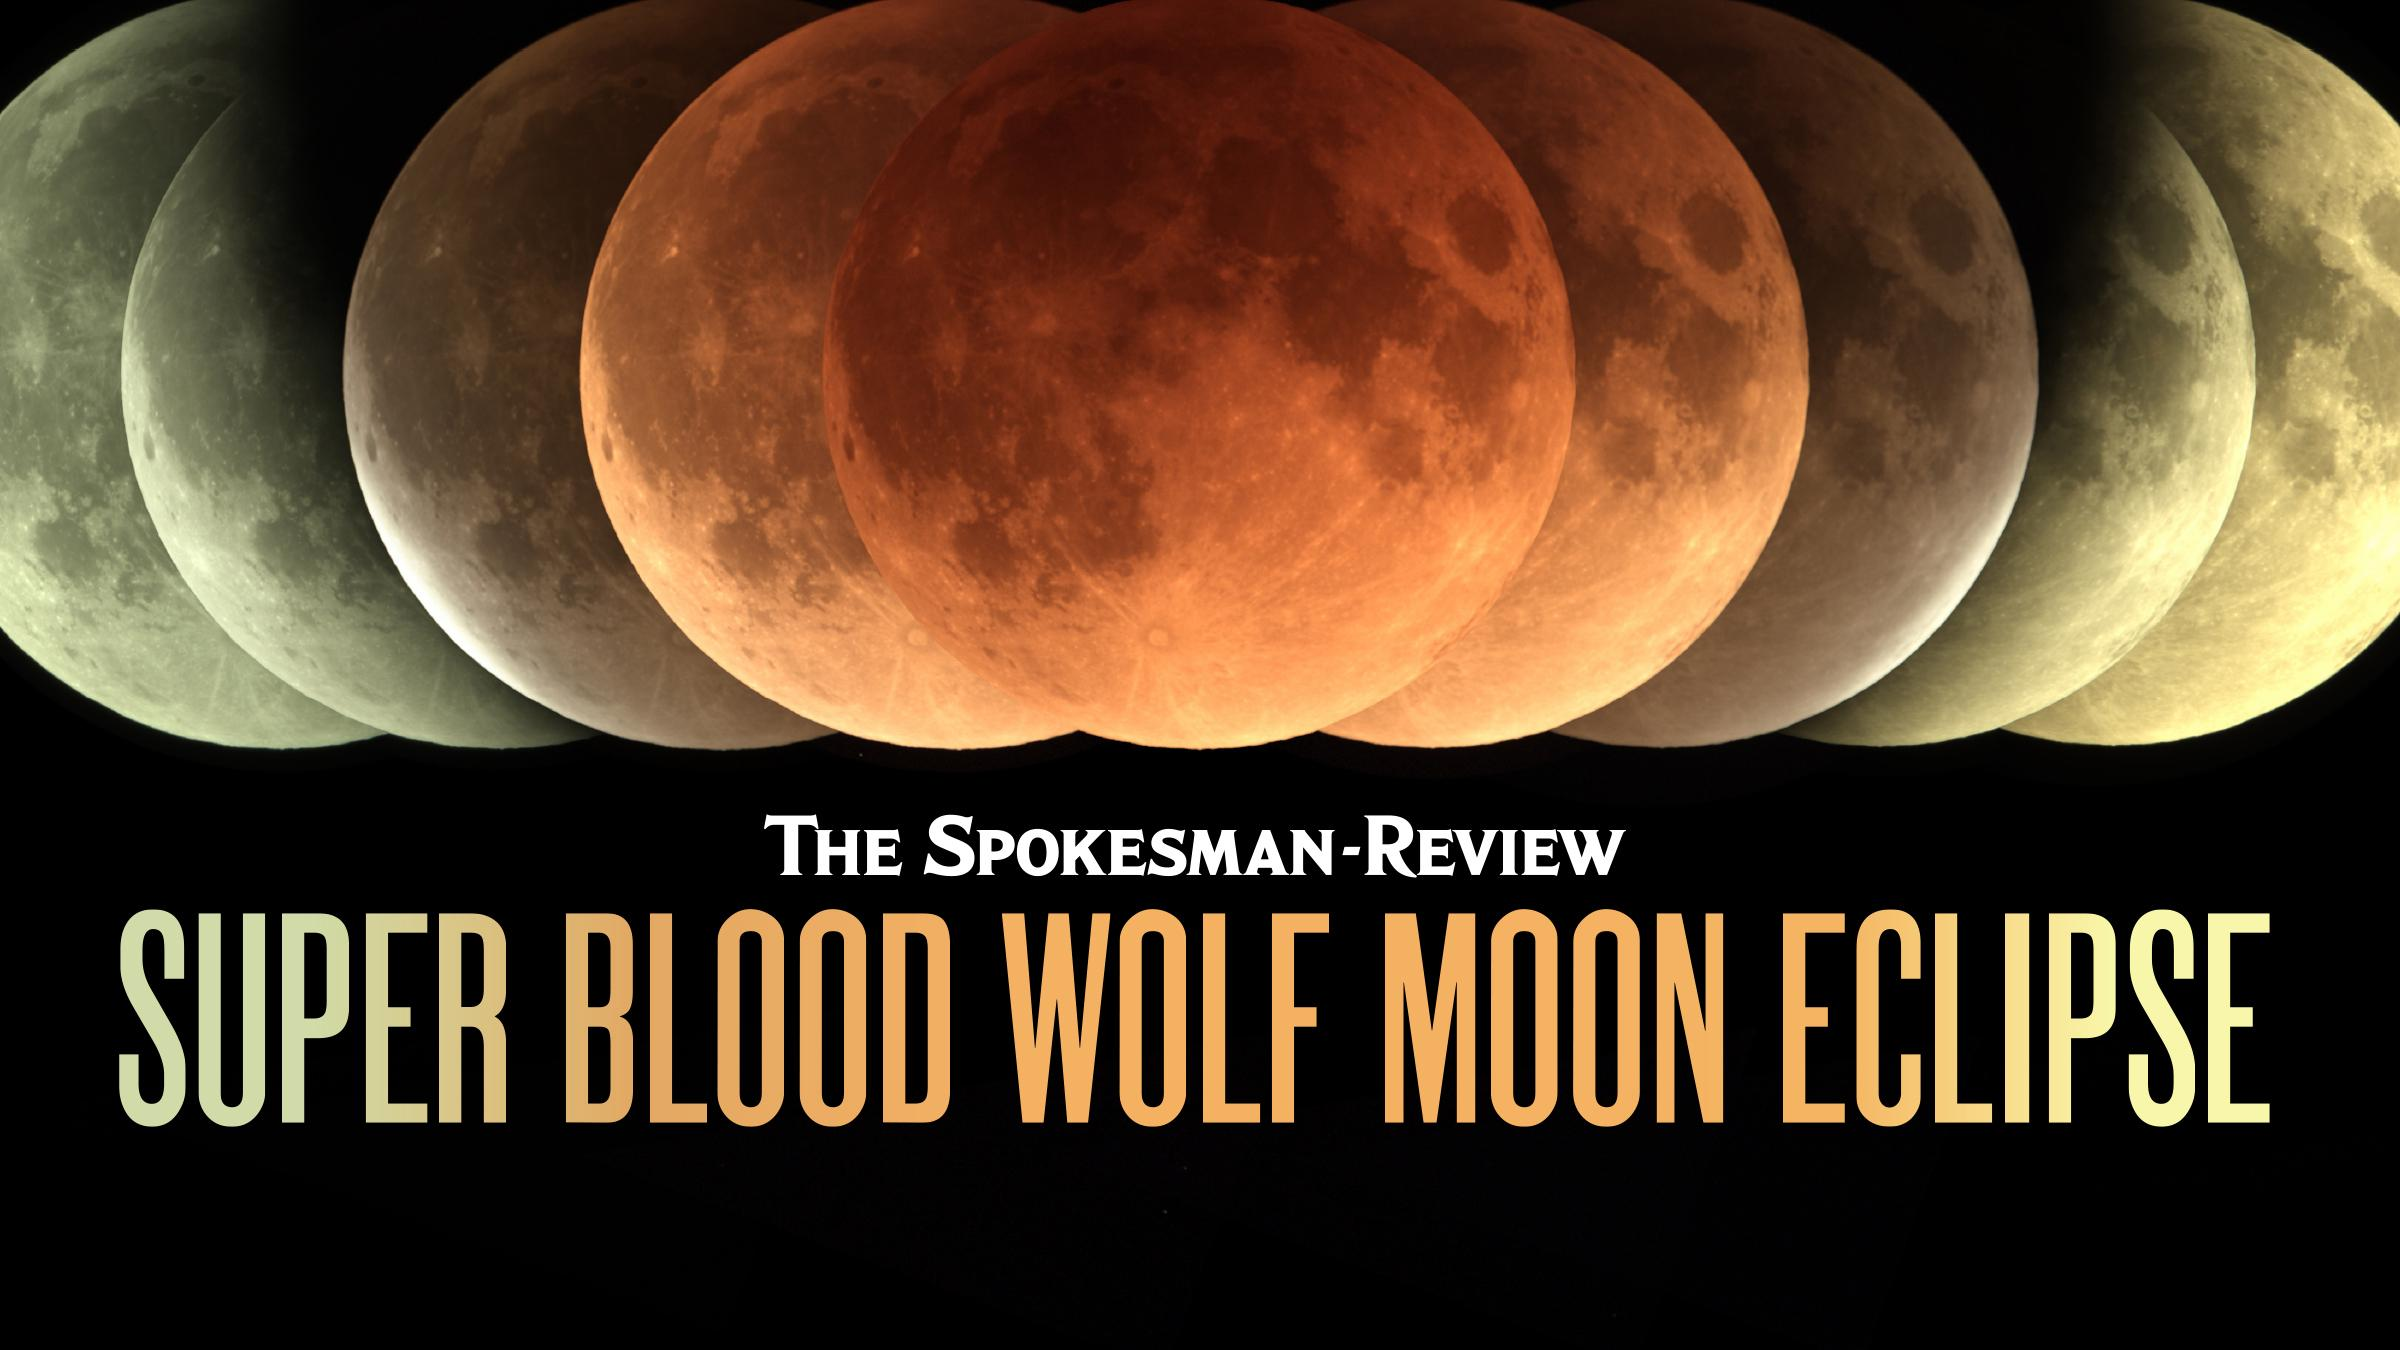 Super Blood Wolf Moon Eclipse Worth Howling About If Weather Clears